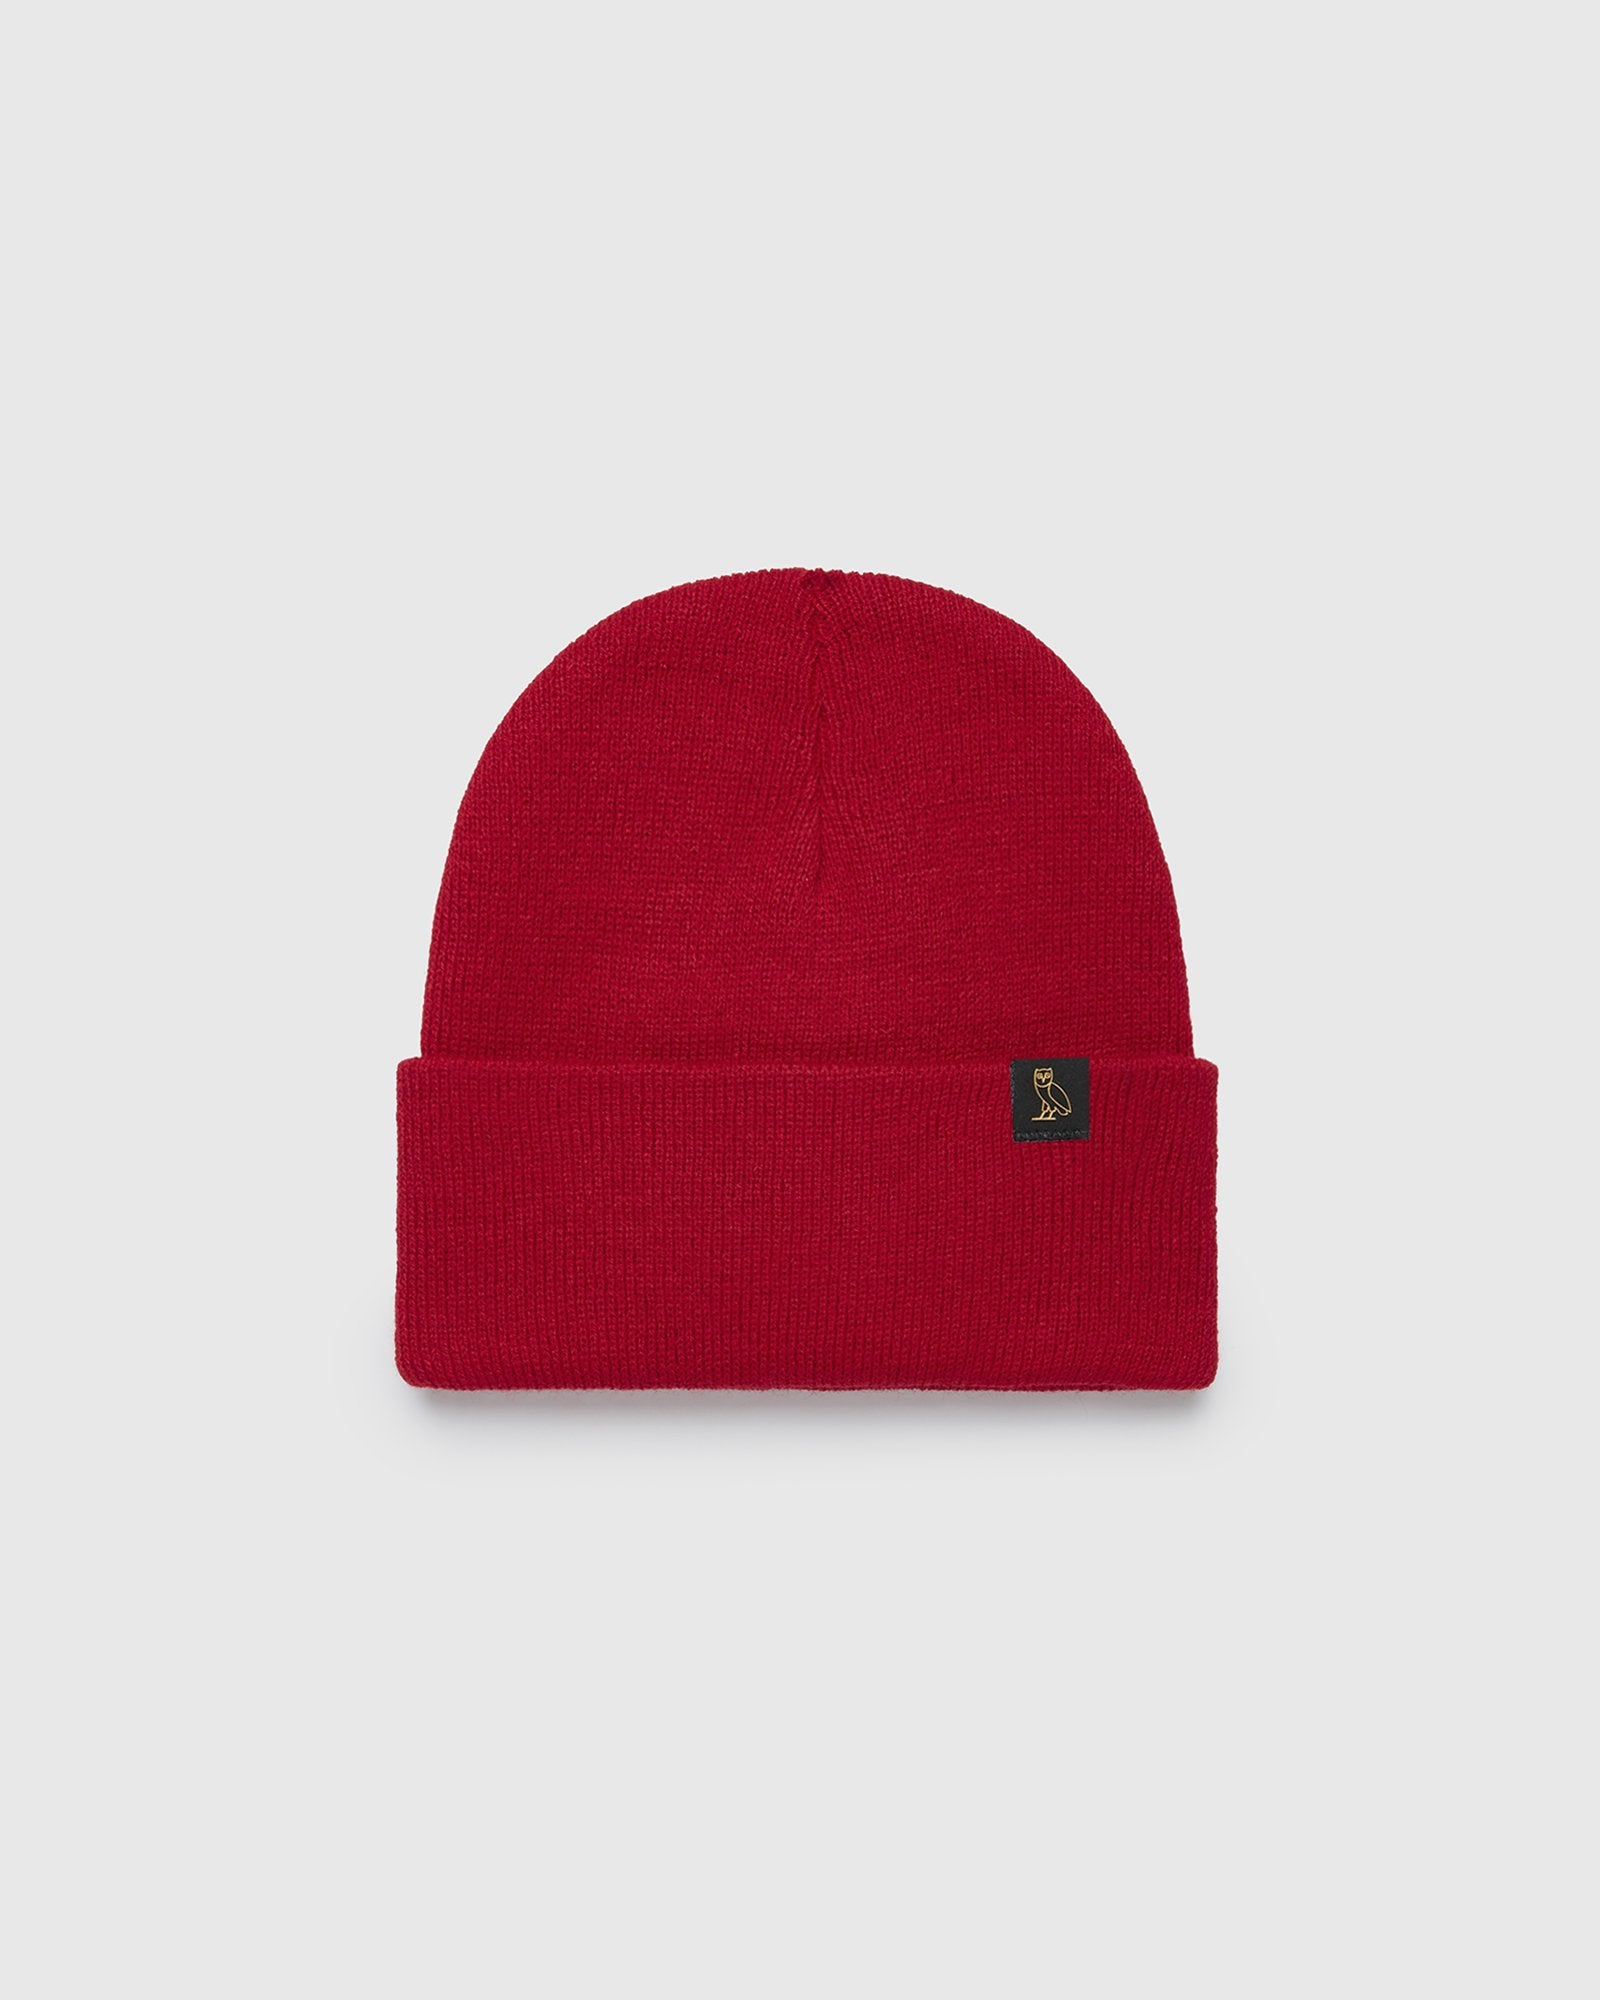 OVO BEANIE - DARK RED IMAGE #1